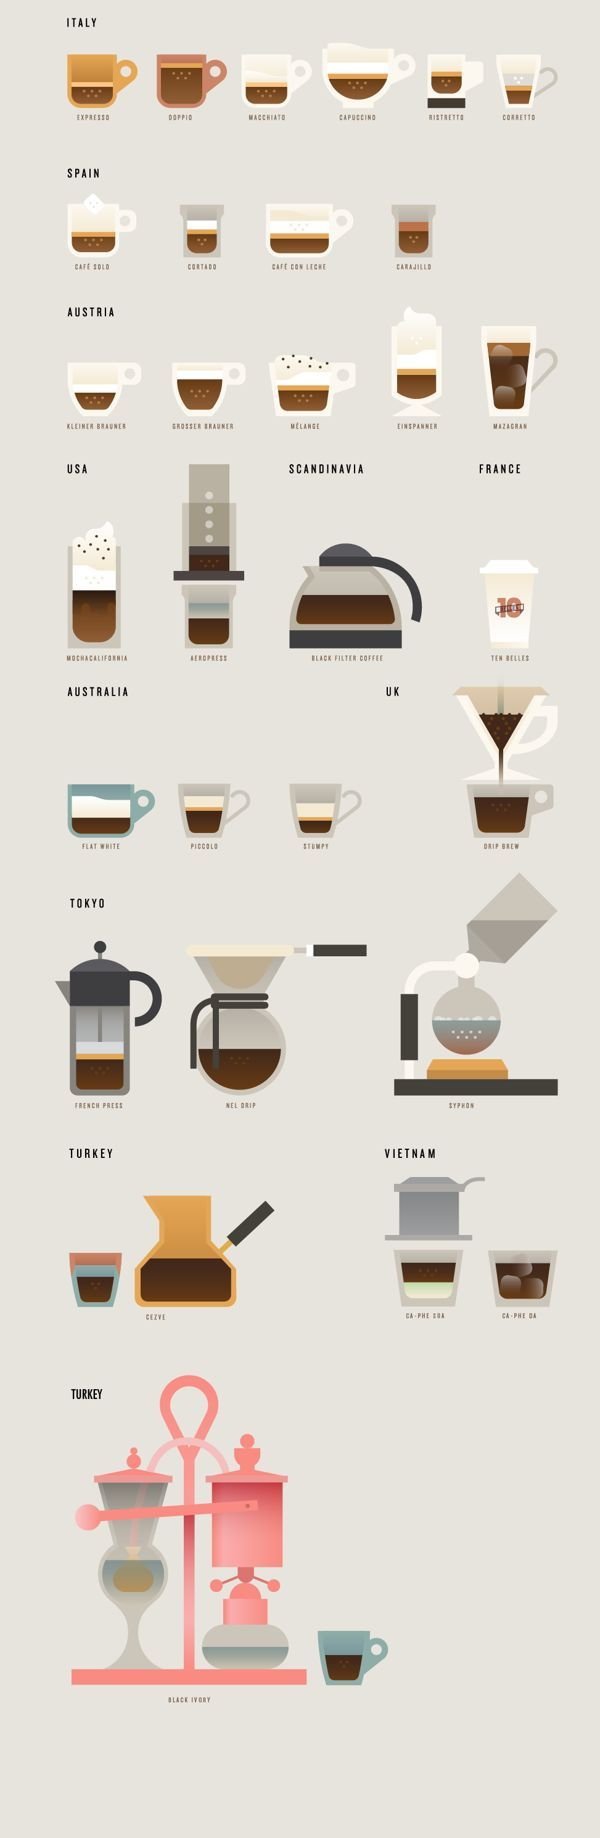 Coffee cups and mugs from various countries.